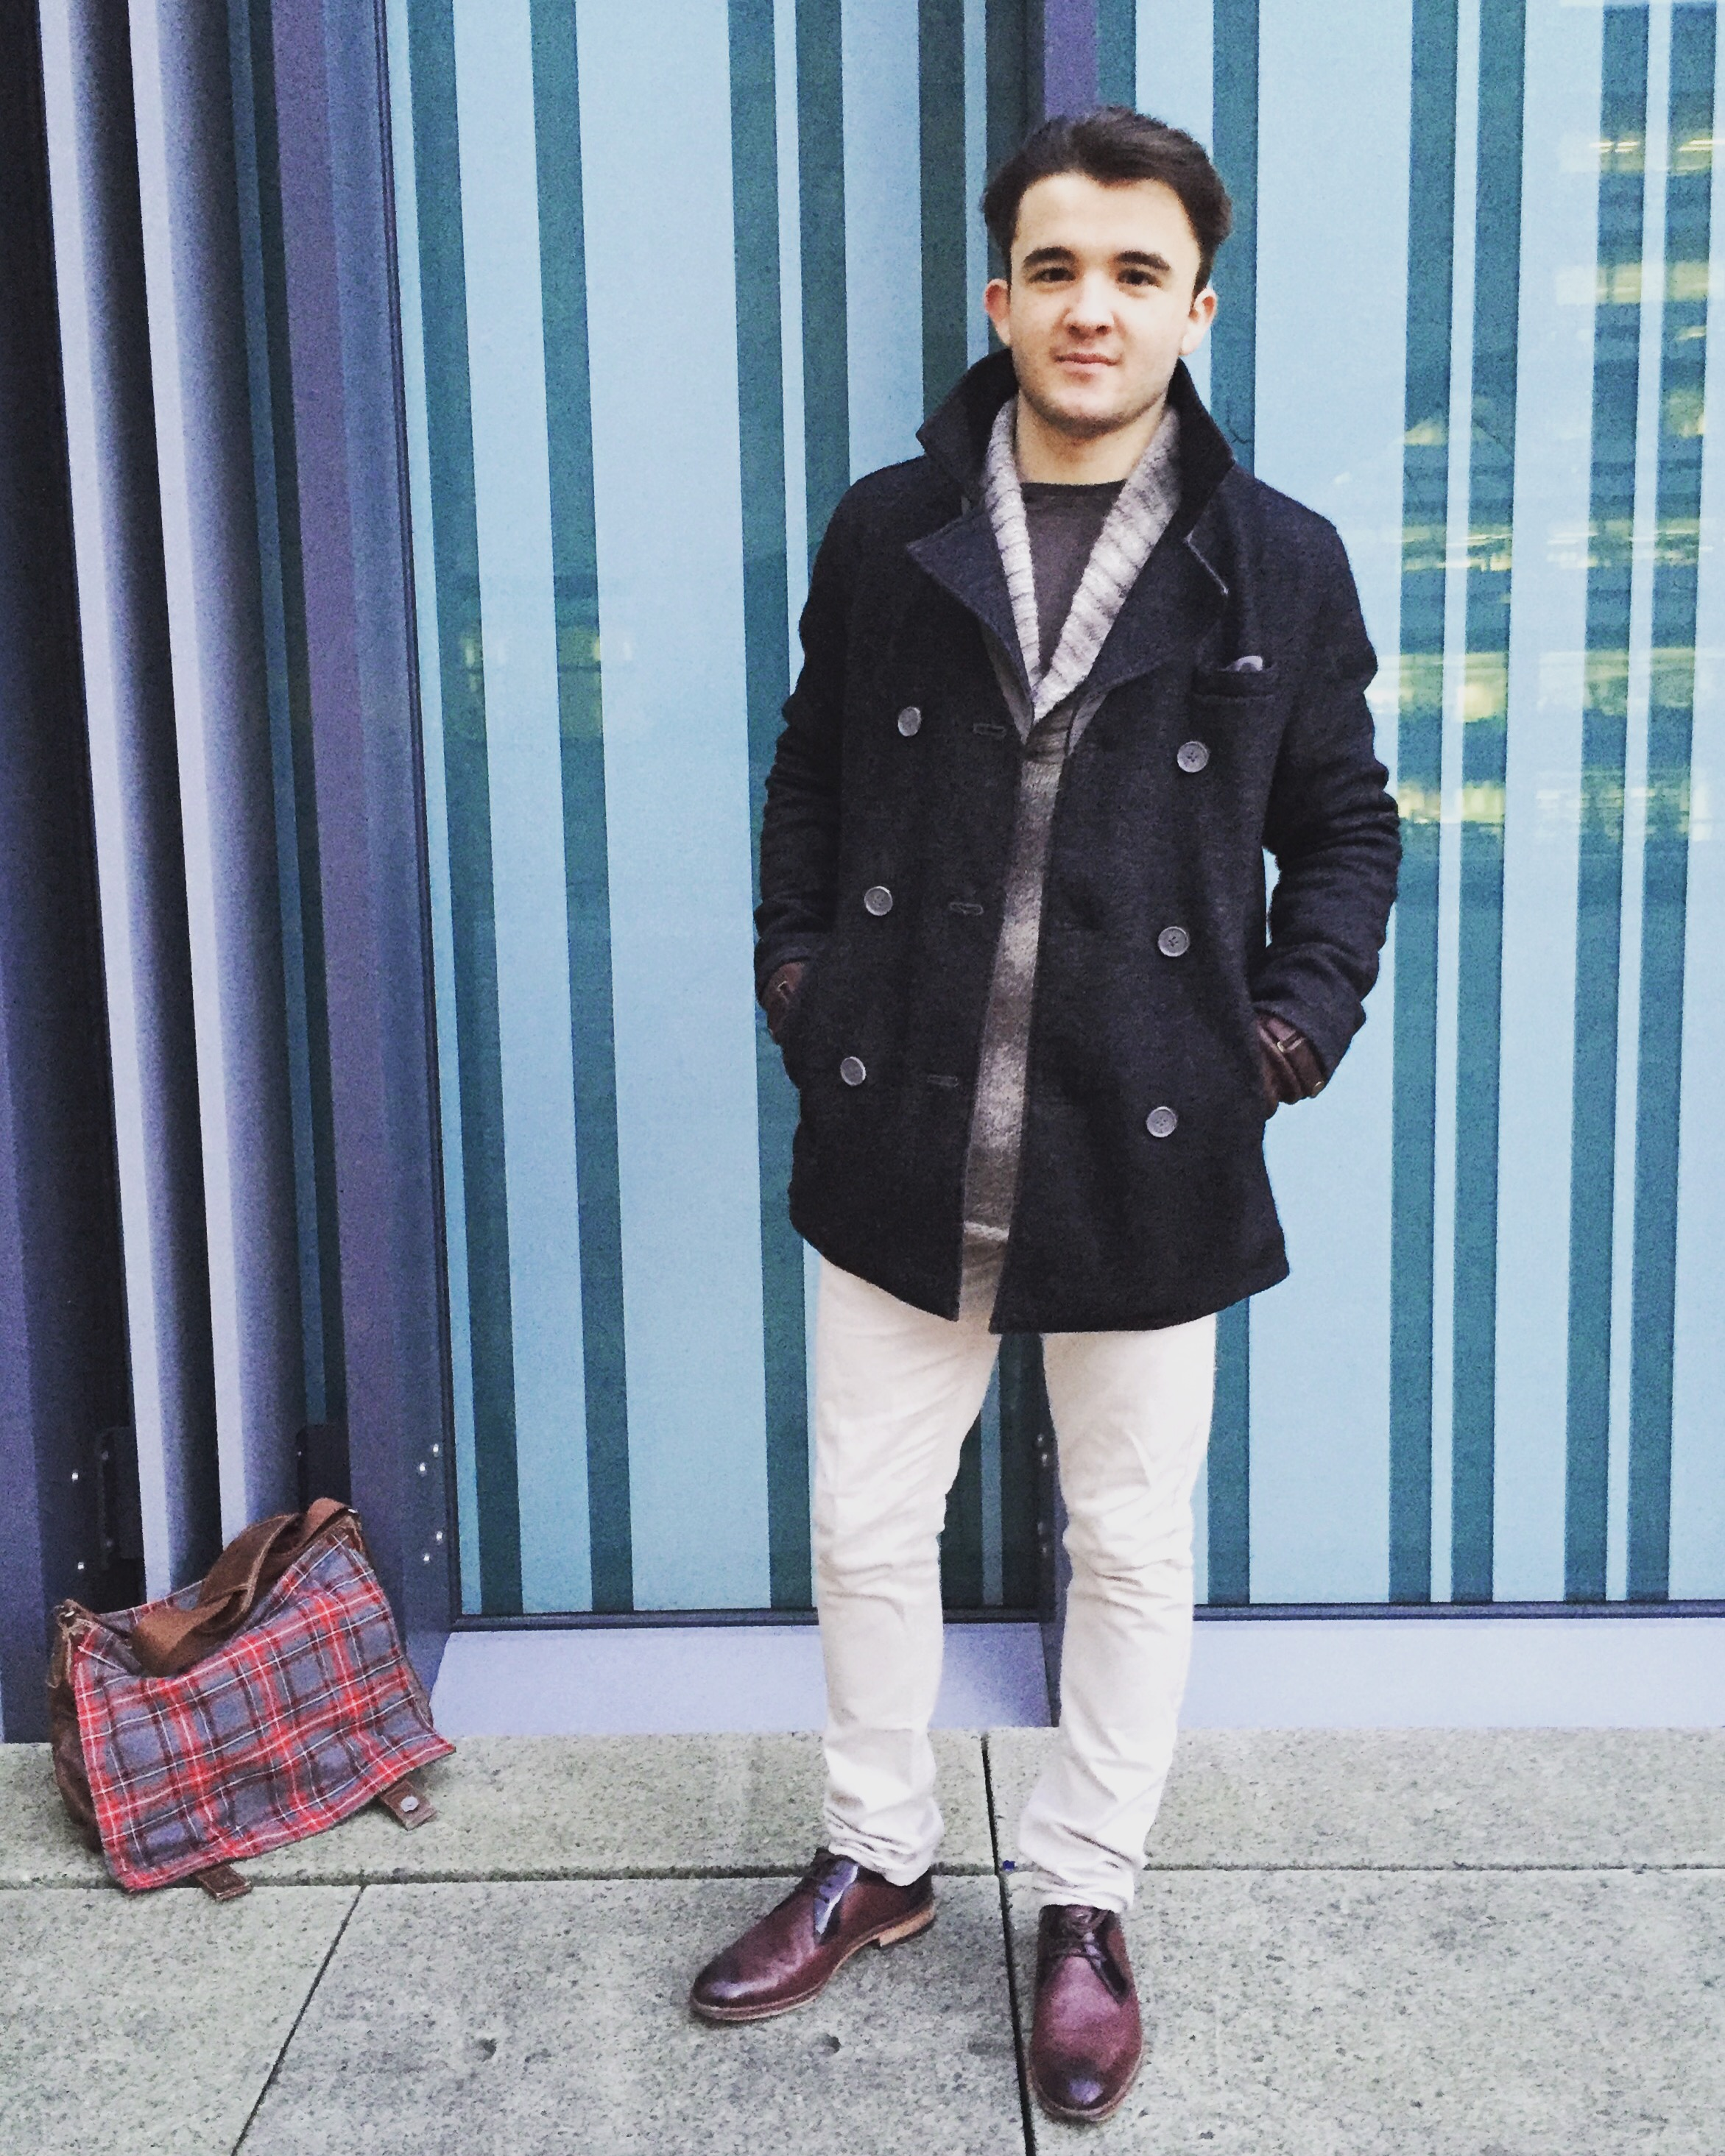 Emile, 4th year, Economics and Maths